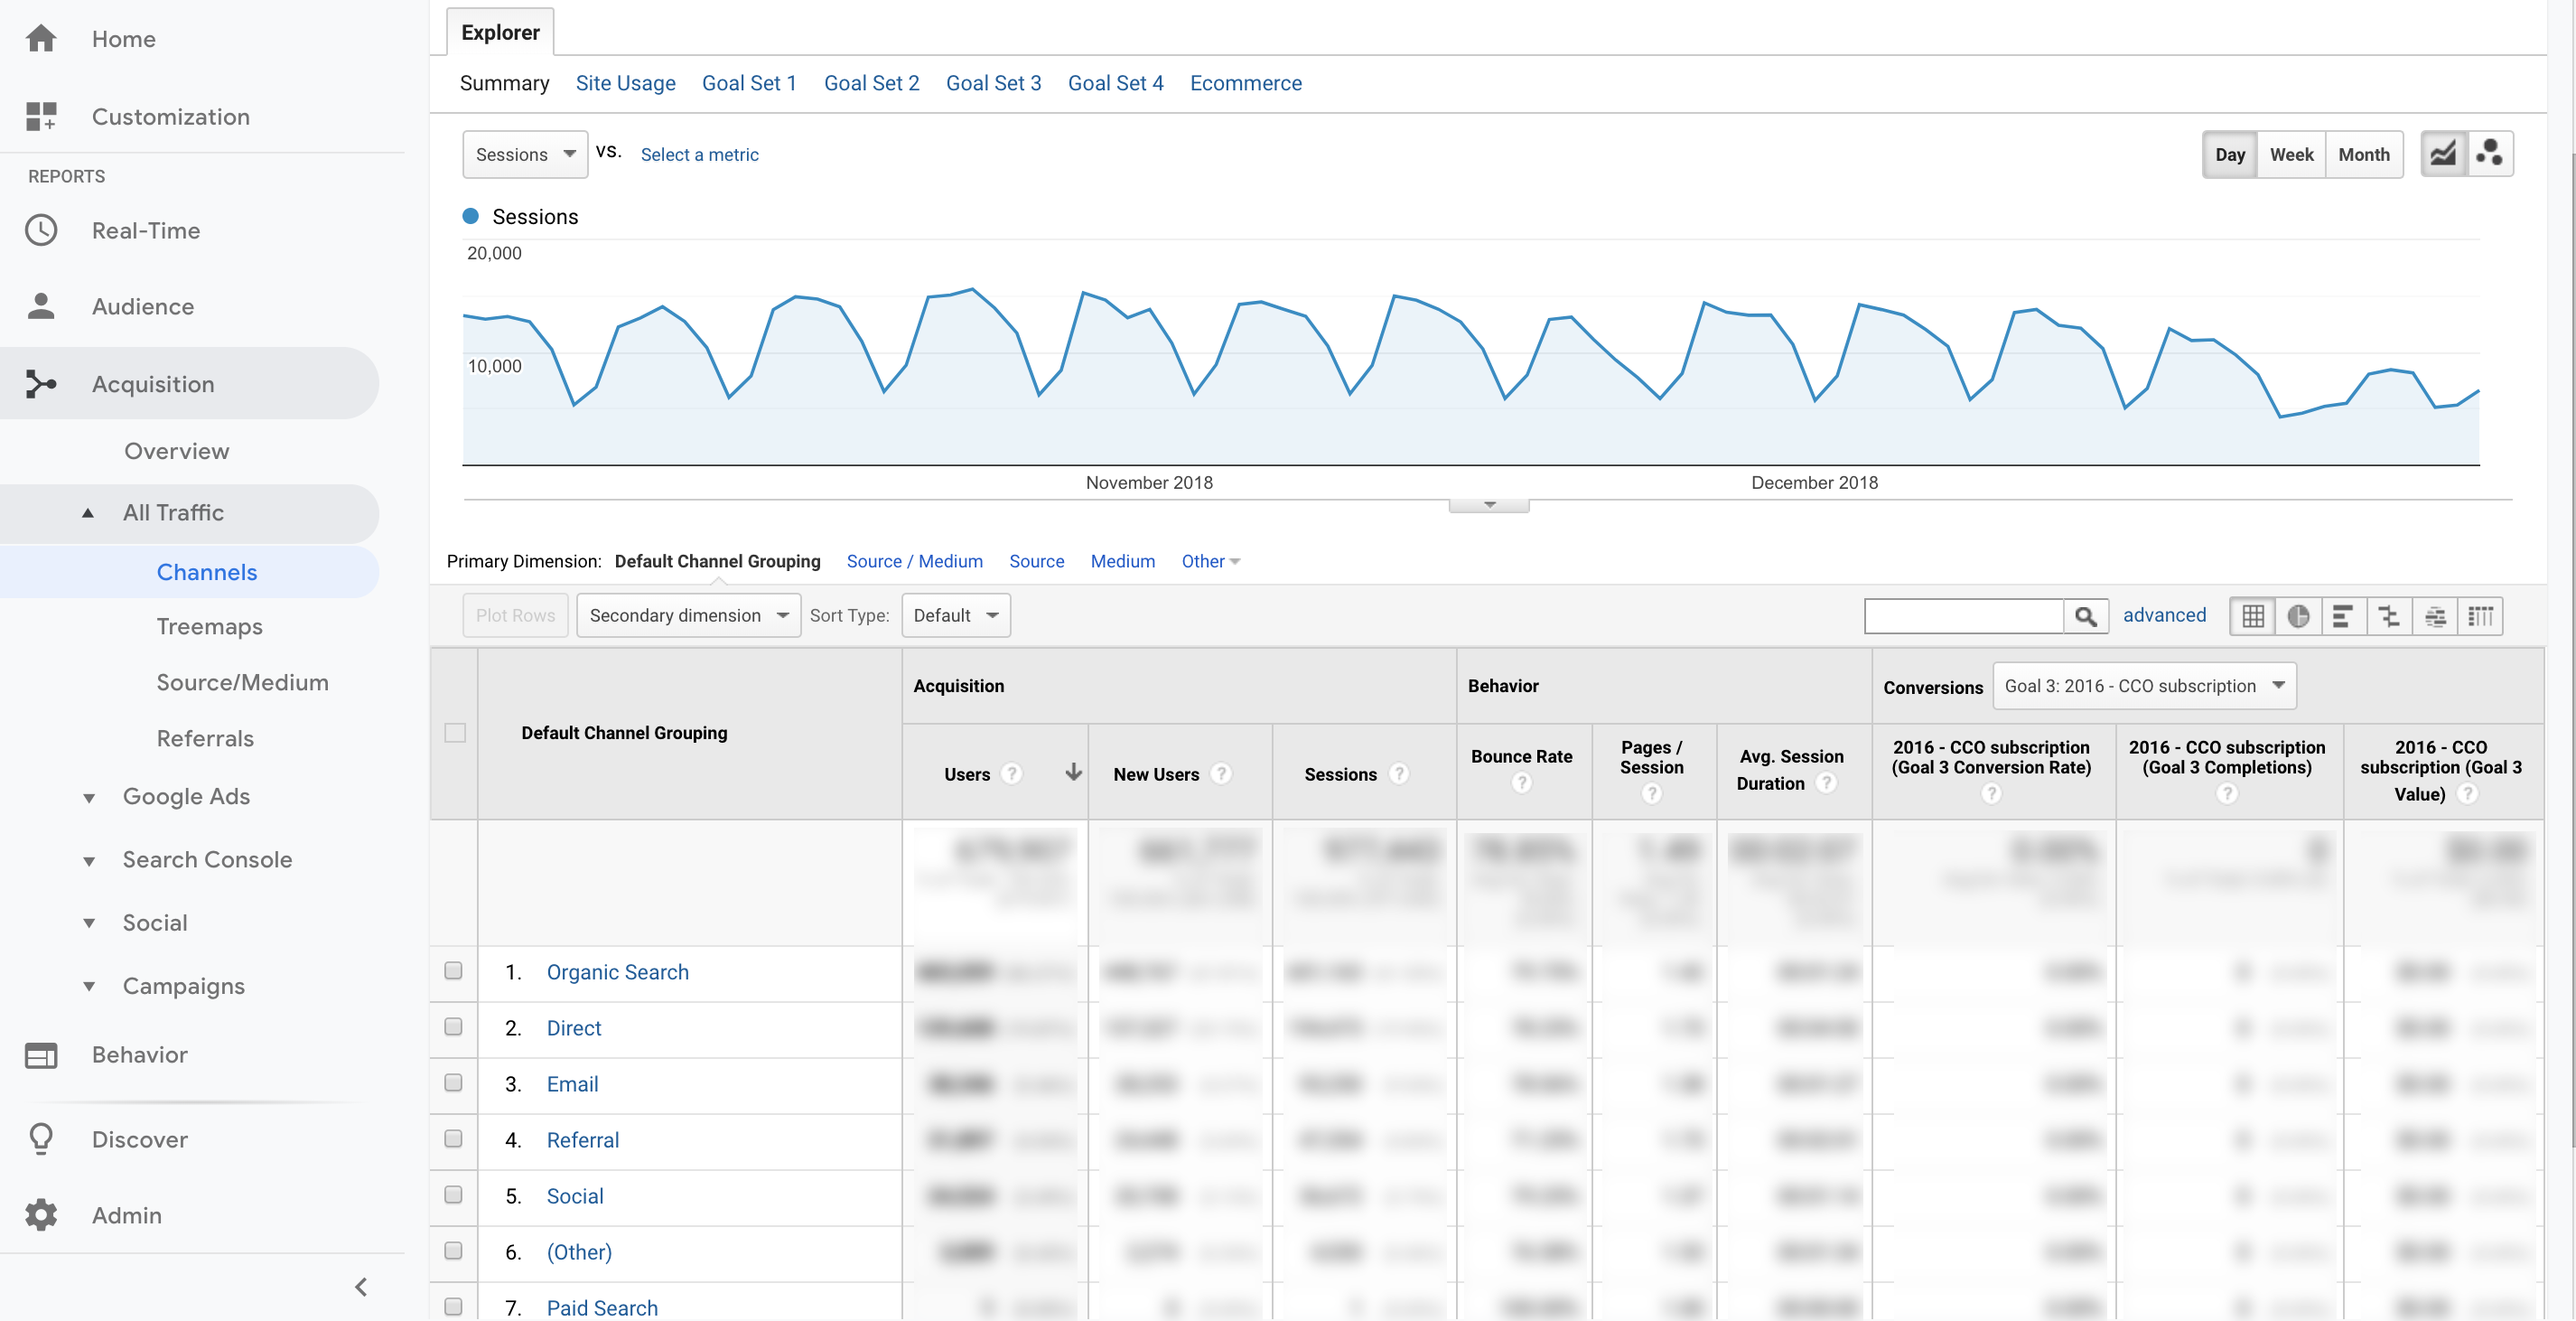 Google Analytics: How to Use Key Reports